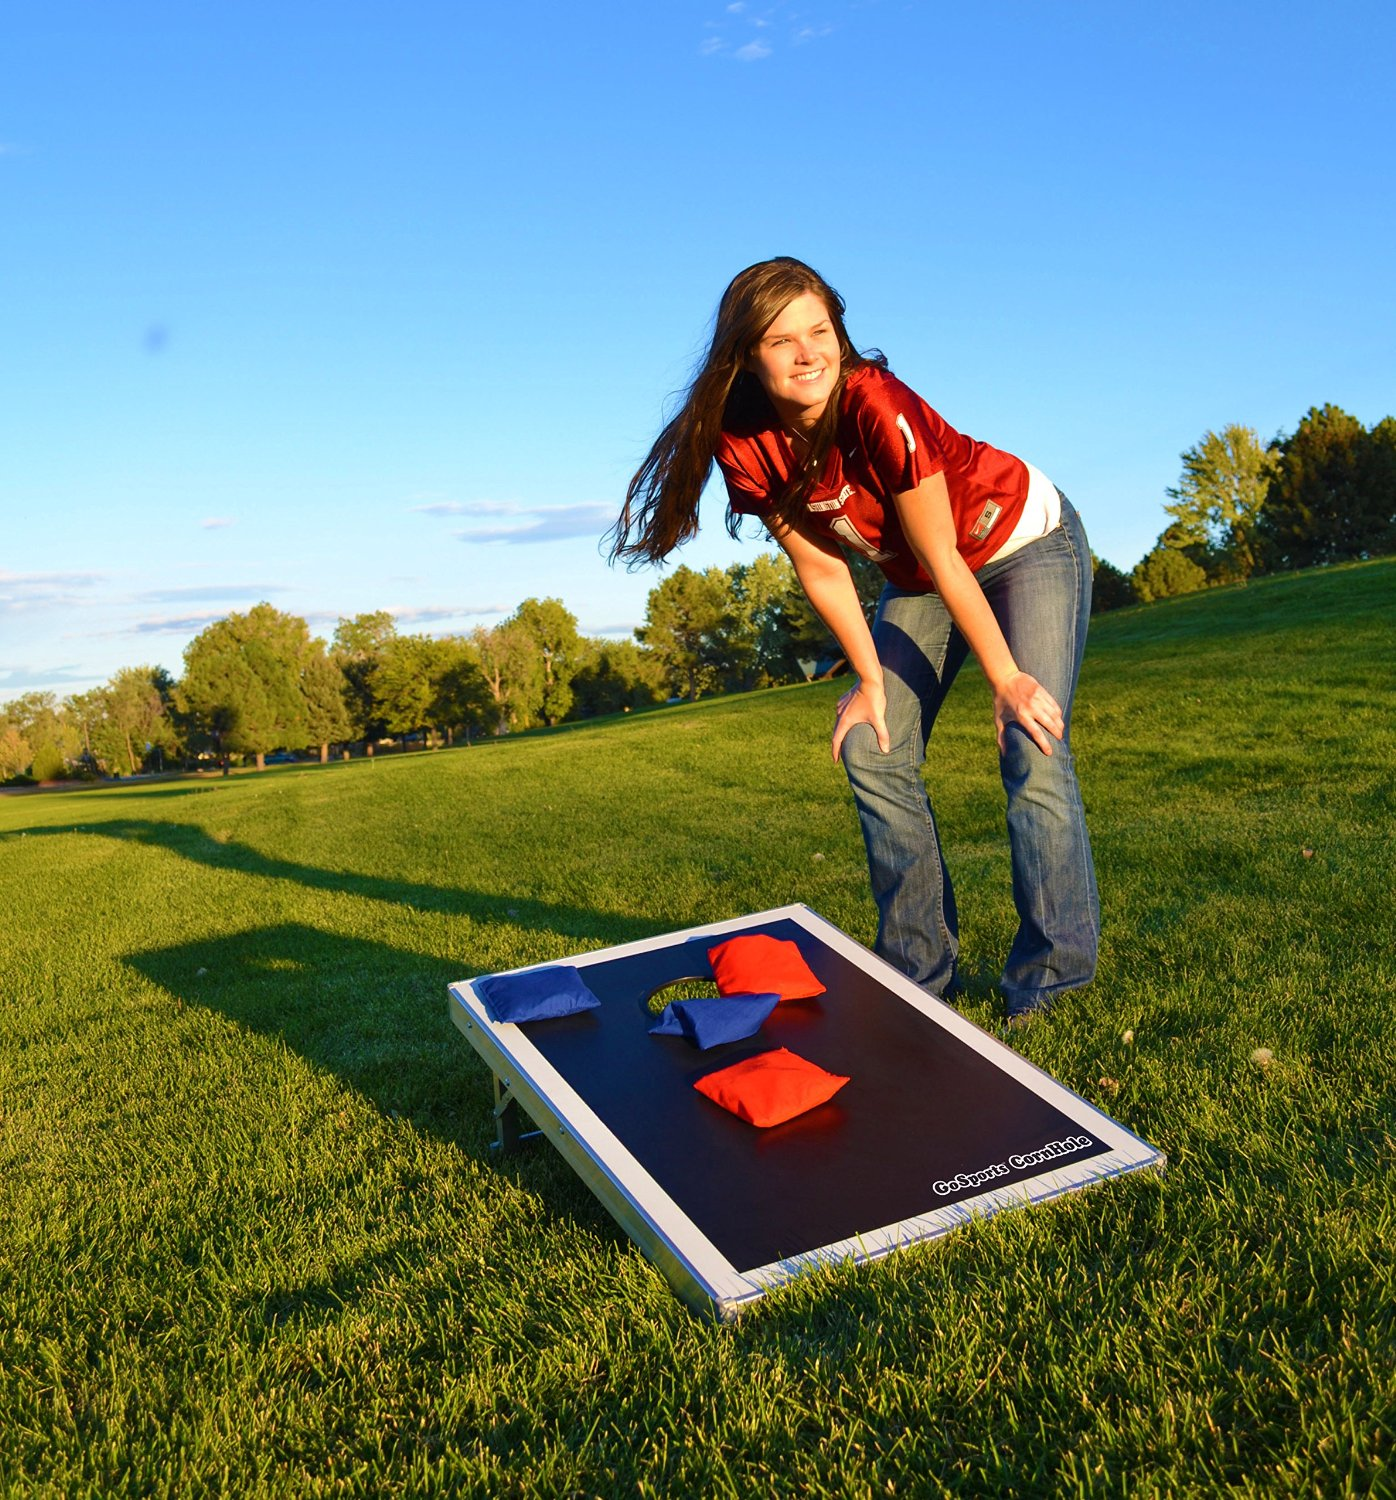 Corn Hole (or Bags) Game - Best Games for Outdoor Parties